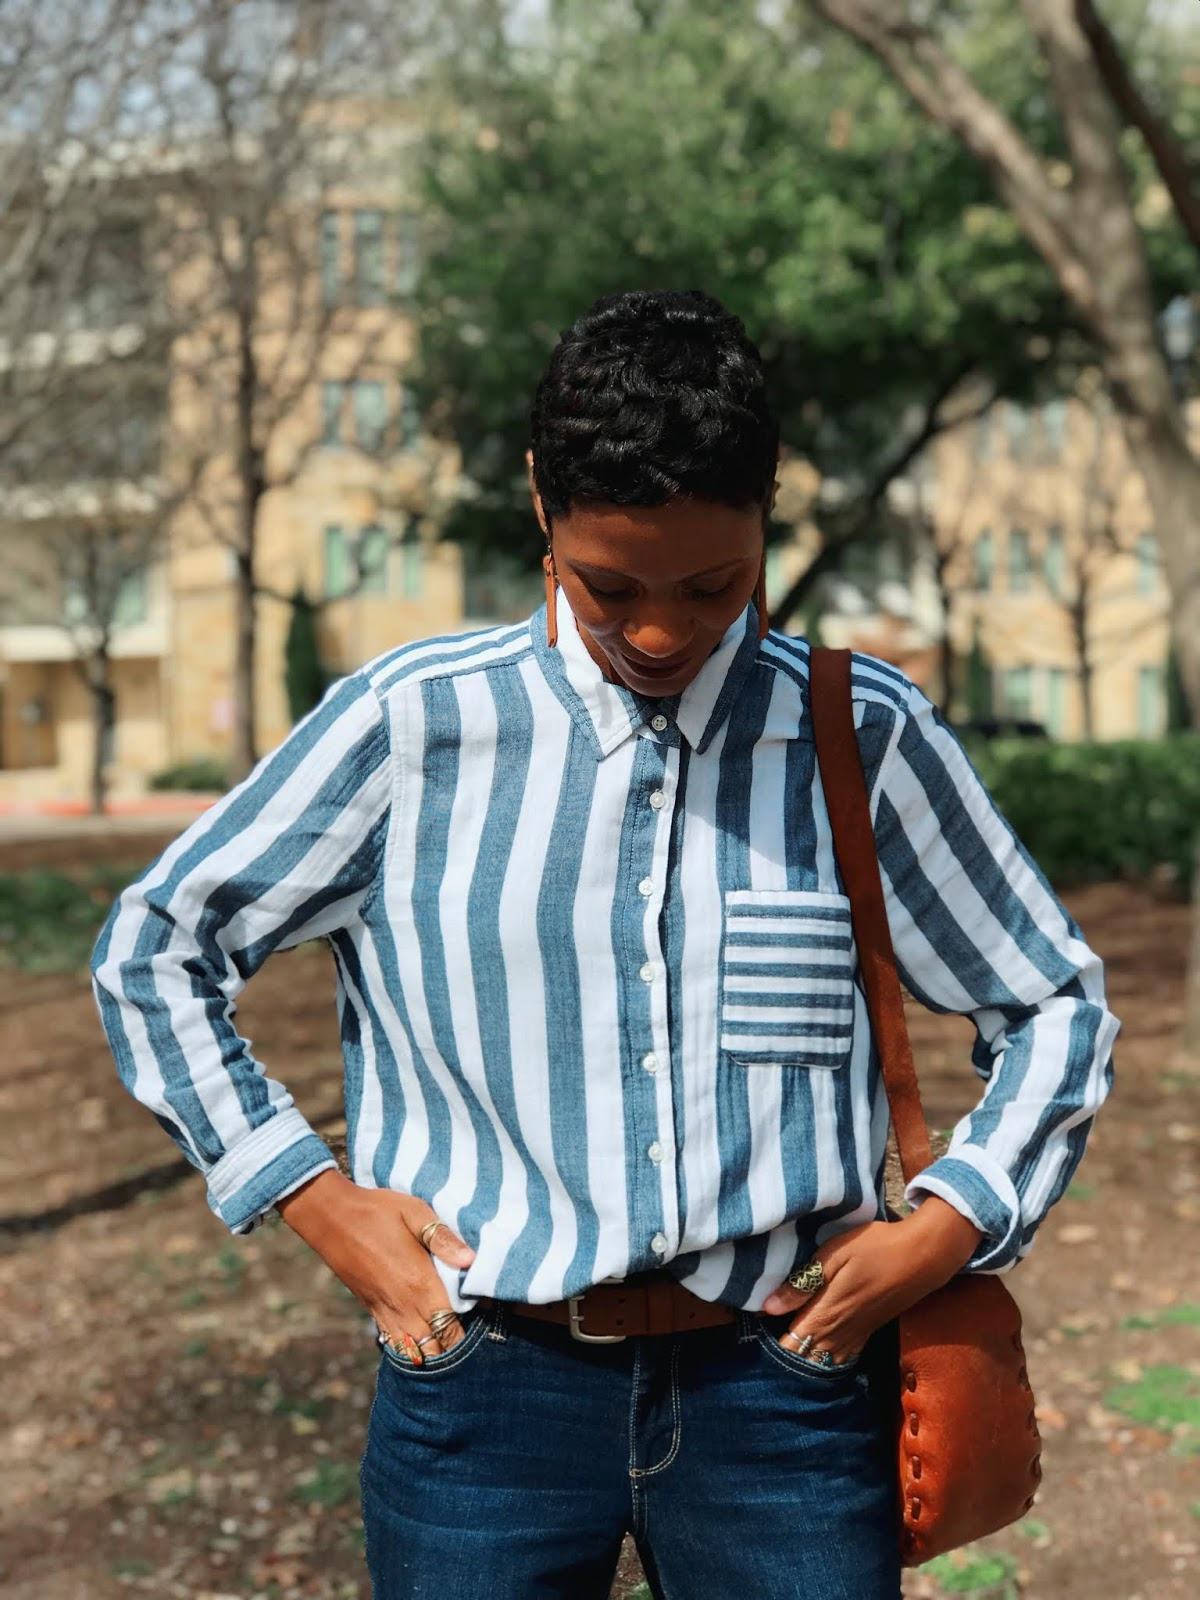 My NEW Thrifted Striped Shirt + How I RESTYLED It!